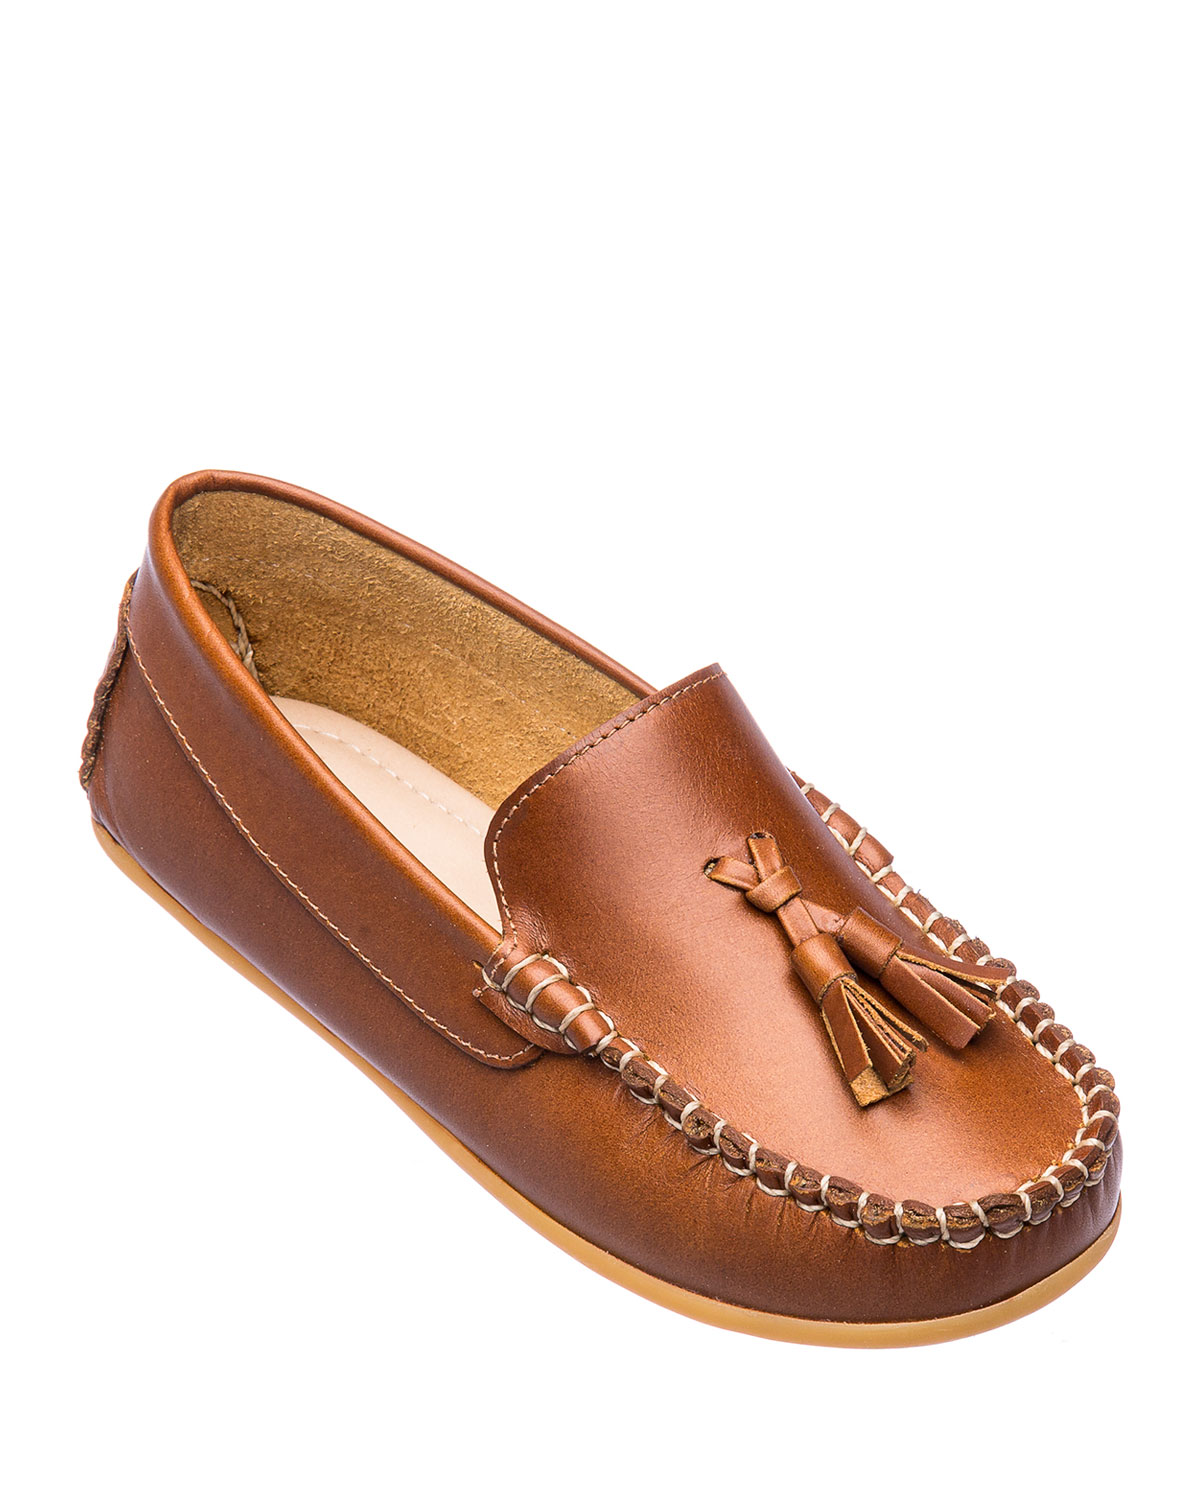 Monaco Leather Loafers